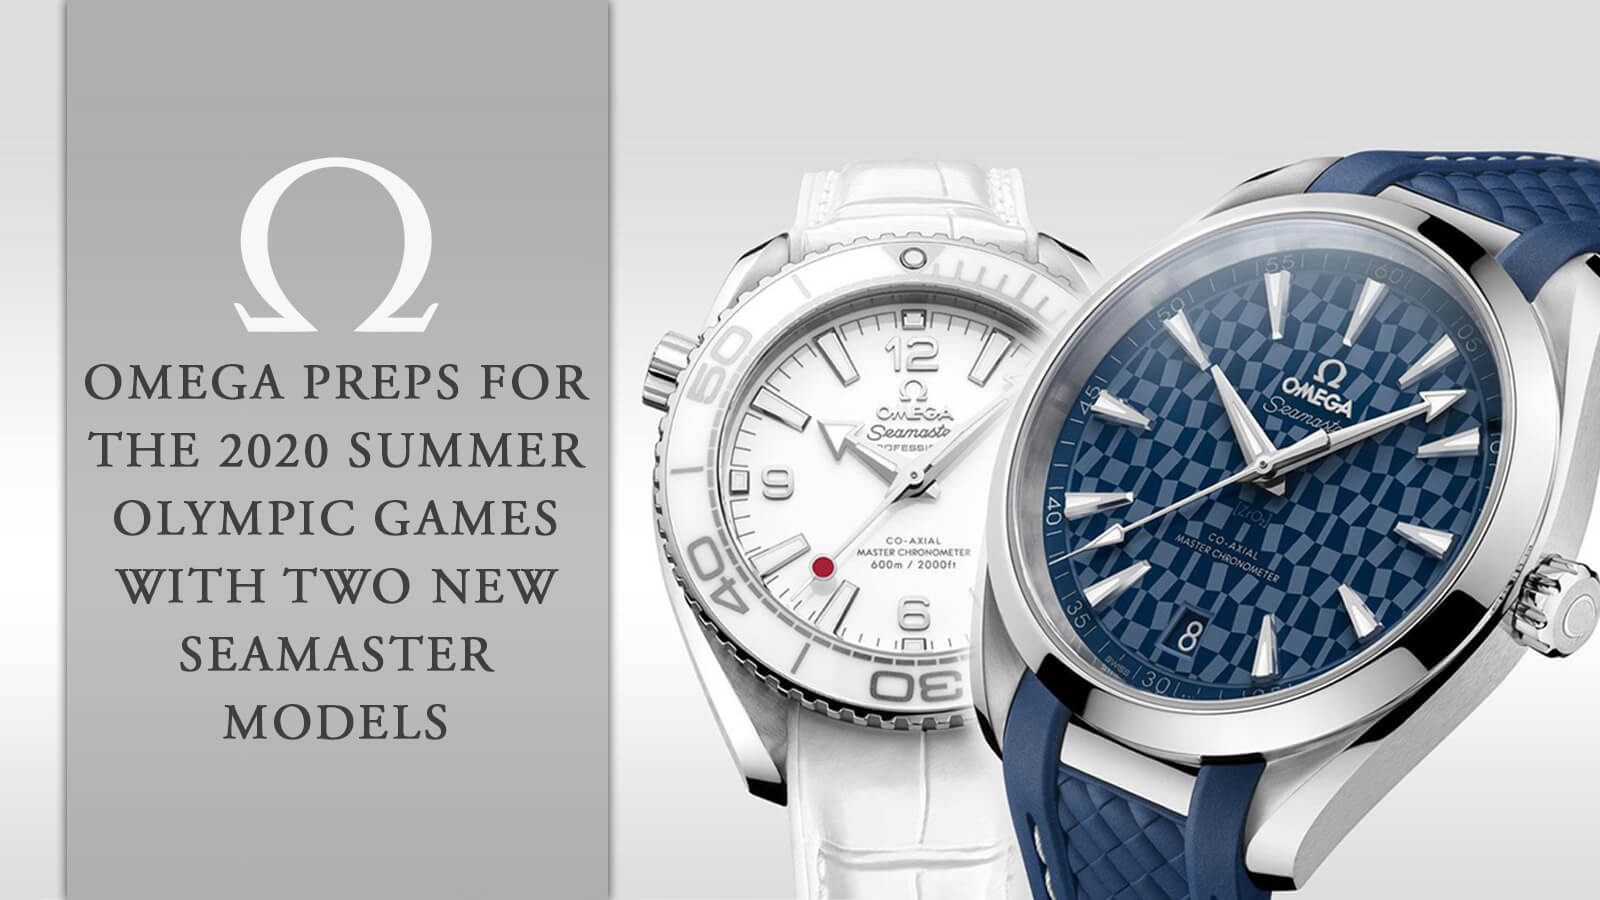 Omega Preps for the 2020 Summer Olympic Games with Two New Seamaster Models